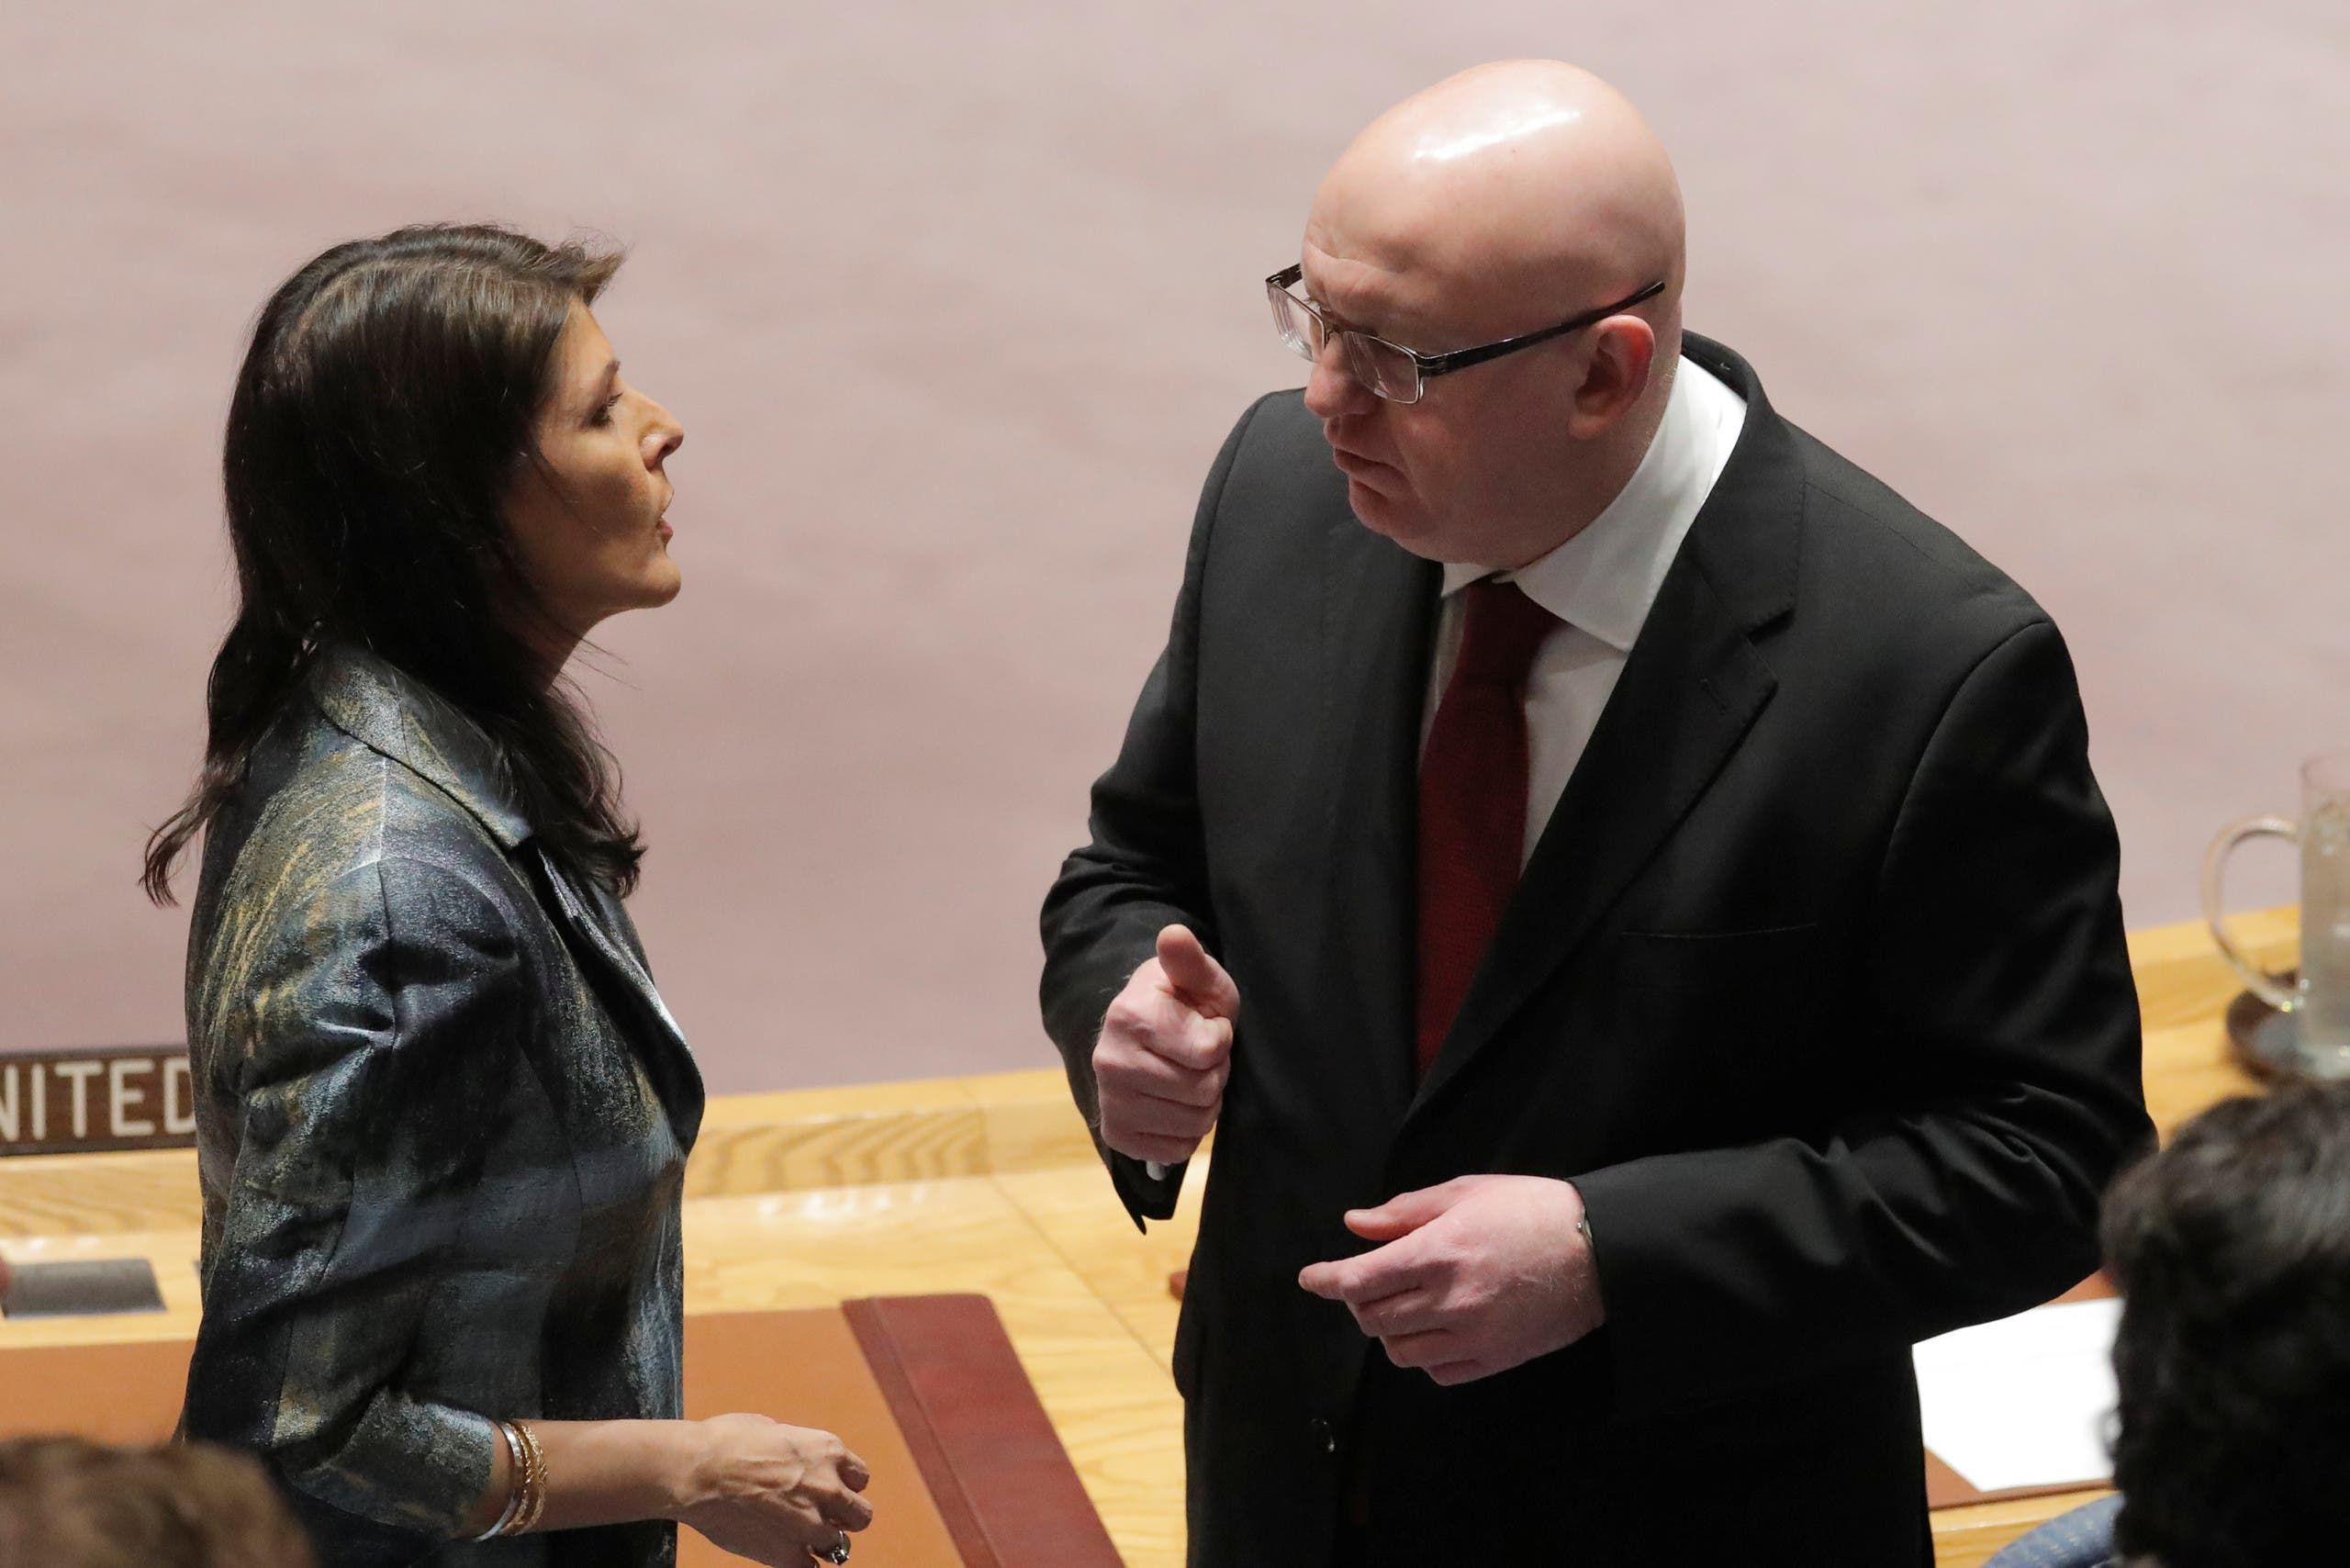 U.S. United Nations ambassador Nikki Haley speaks with Russian ambassador to the UN Vasily Nebenzya before a meeting of the UN Security Council at UN headquarters in New York, U.S., February 20, 2018. REUTERS/Lucas Jackson